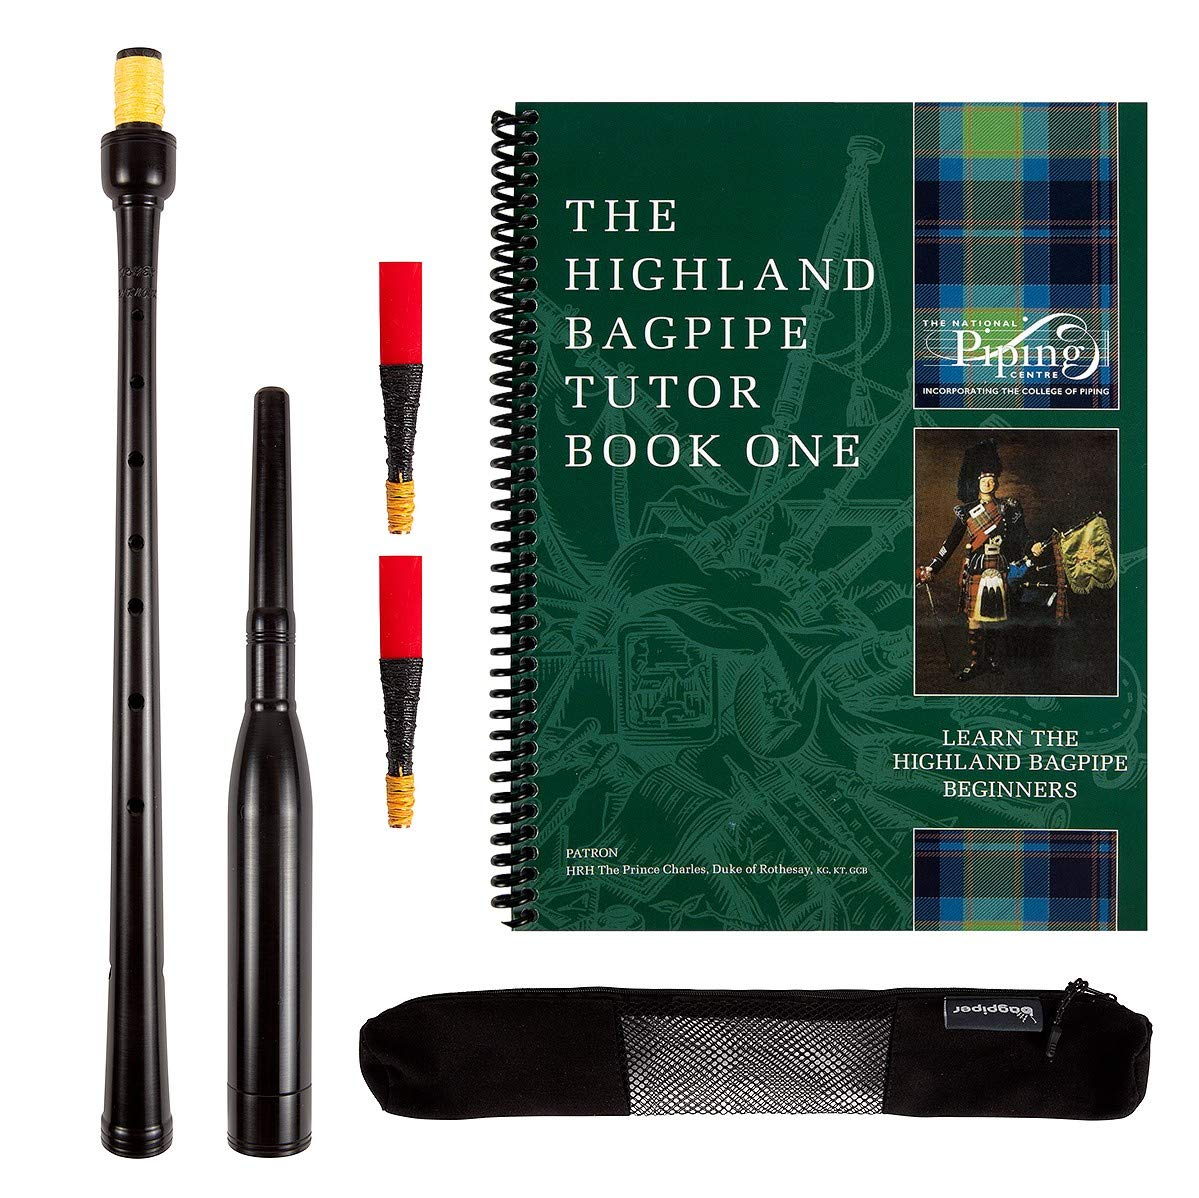 Frazer Warnock 21 inch Long Bagpipe Practice Chanter,The National Piping Center of Scotland Tutor Book, with 2 Quality Reeds, Breathable Case